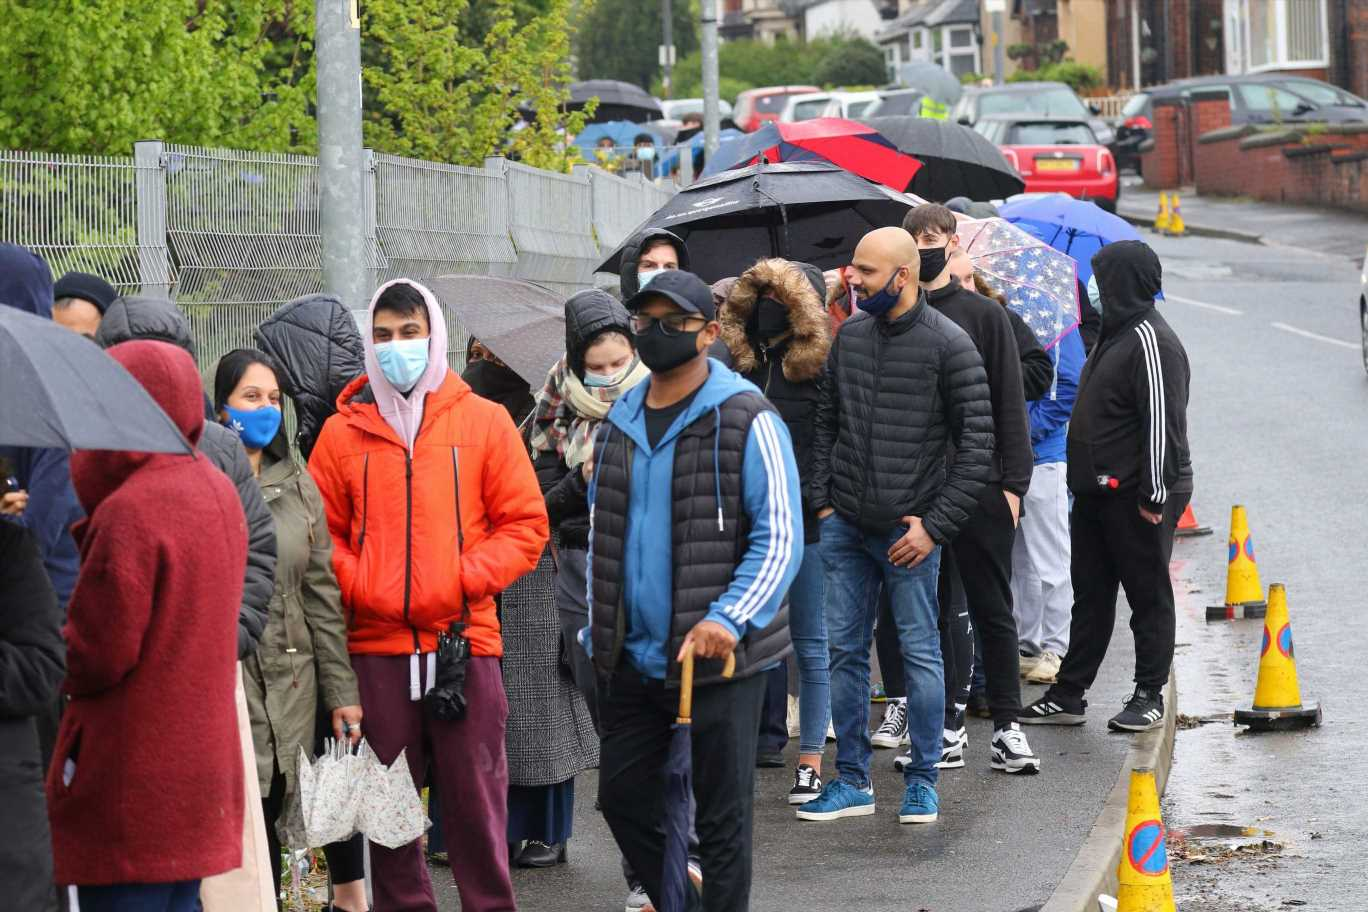 Huge Covid vaccine queue as EVERYONE in Bolton invited to get jab today over Indian variant fears